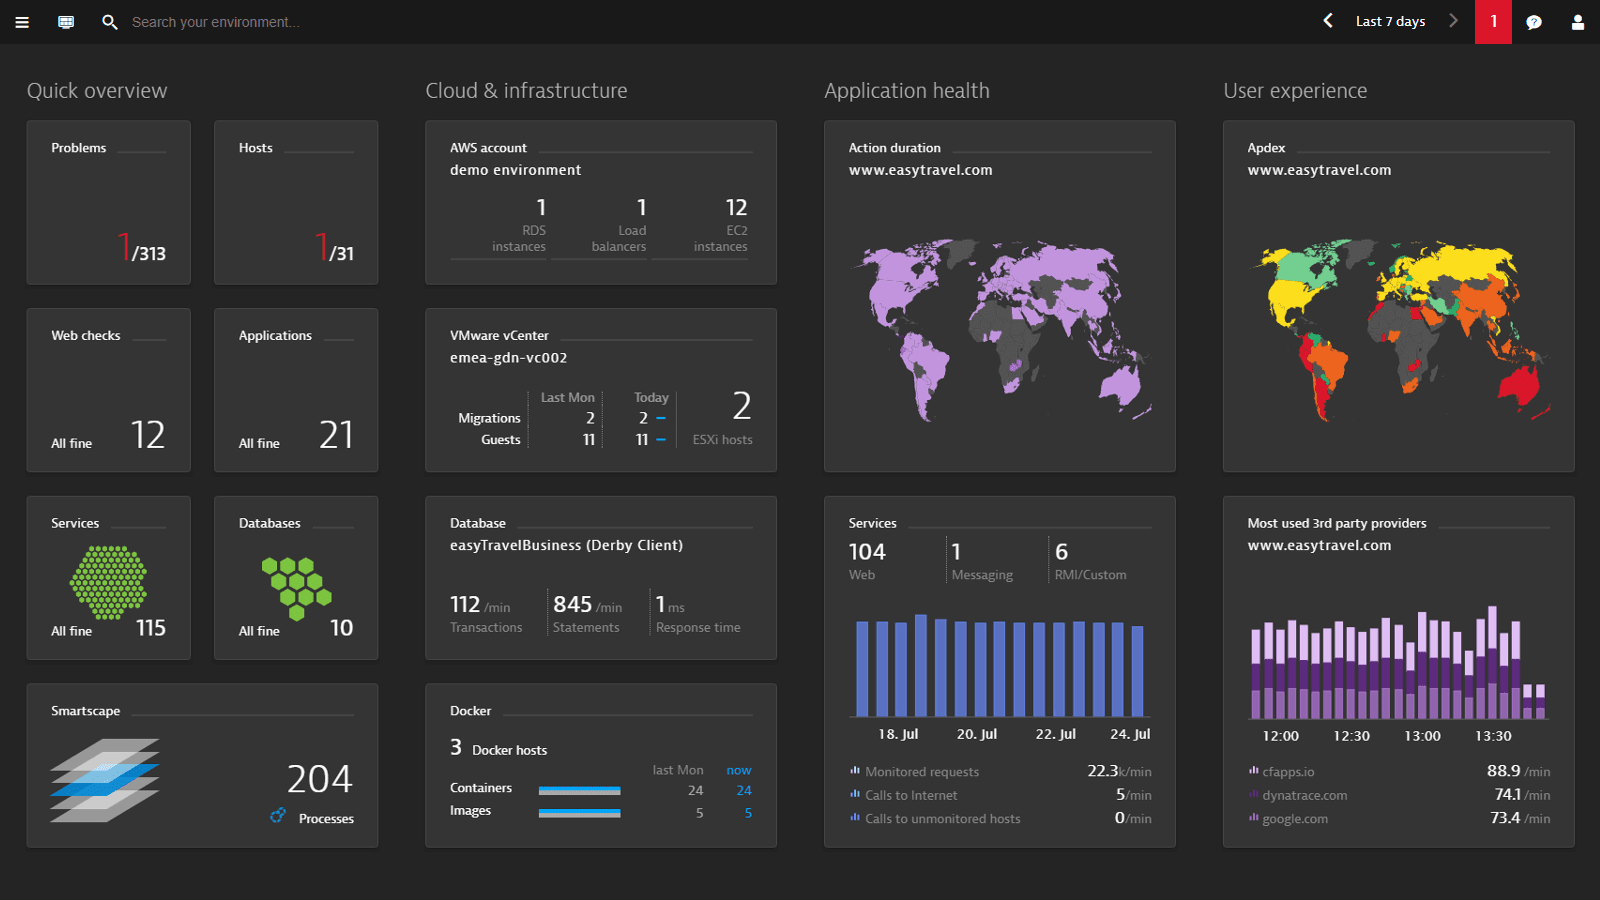 The customizable dashboard shows all important facts of your application environment in one spot